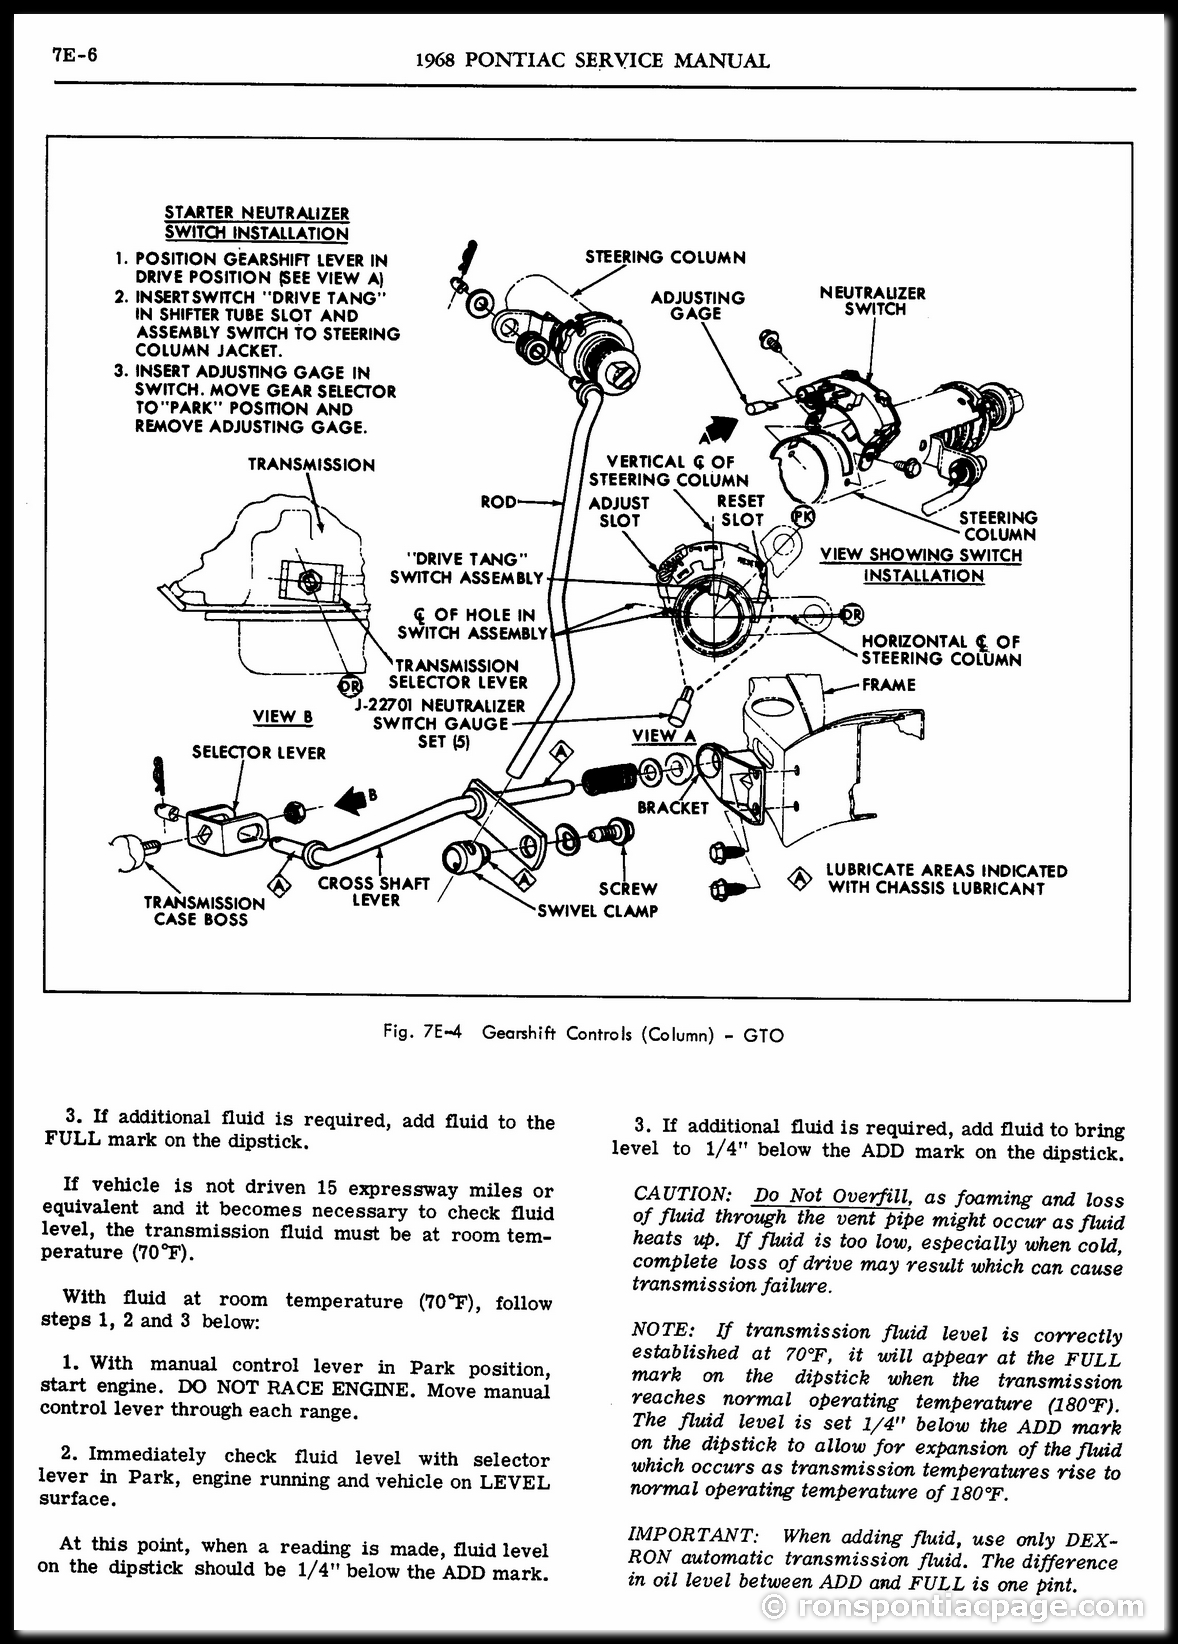 Section 7E: Turbo Hydra-Matic Automatic Transmission (6 of 65)